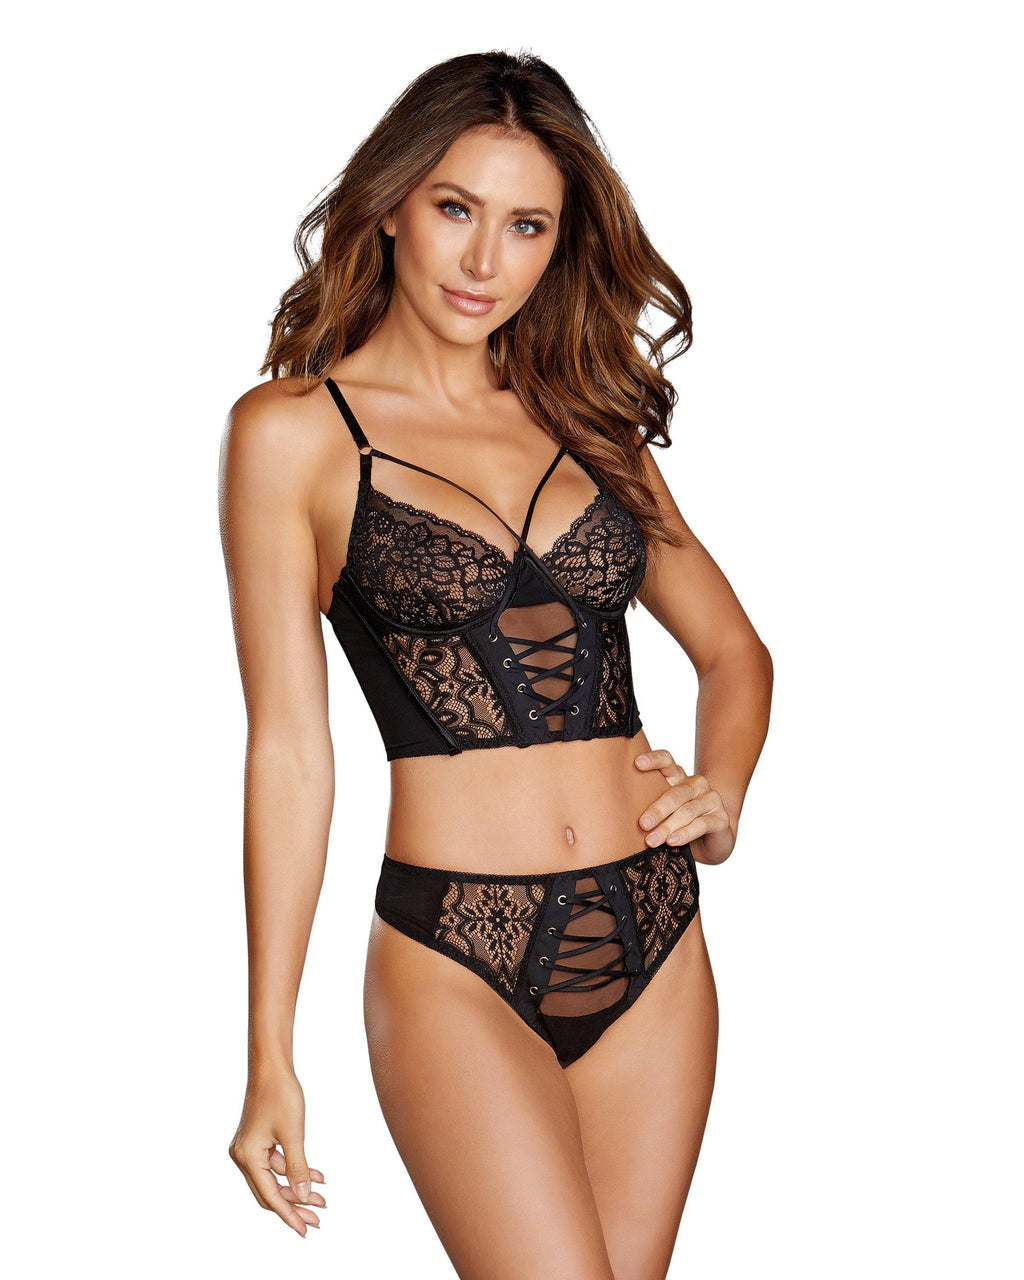 Galloon Lace Underwire Bustier & Panty Bustier Dreamgirl International